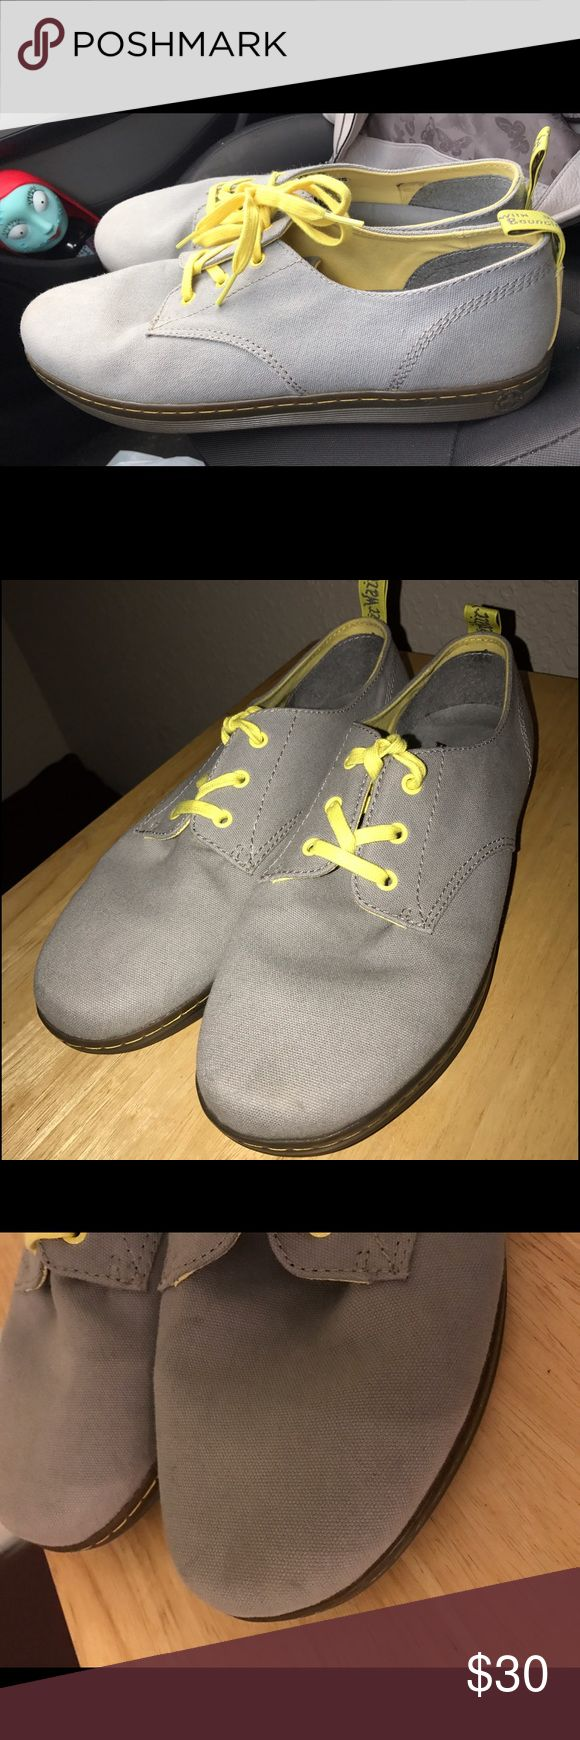 Dr martens gray yellow men shoes. Size 13. Dr martens airware size 13 men's shoes. A few scuffs on one shoe but in very good condition. Pls see photos , pre worn . No box Dr. Martens Shoes Loafers & Slip-Ons